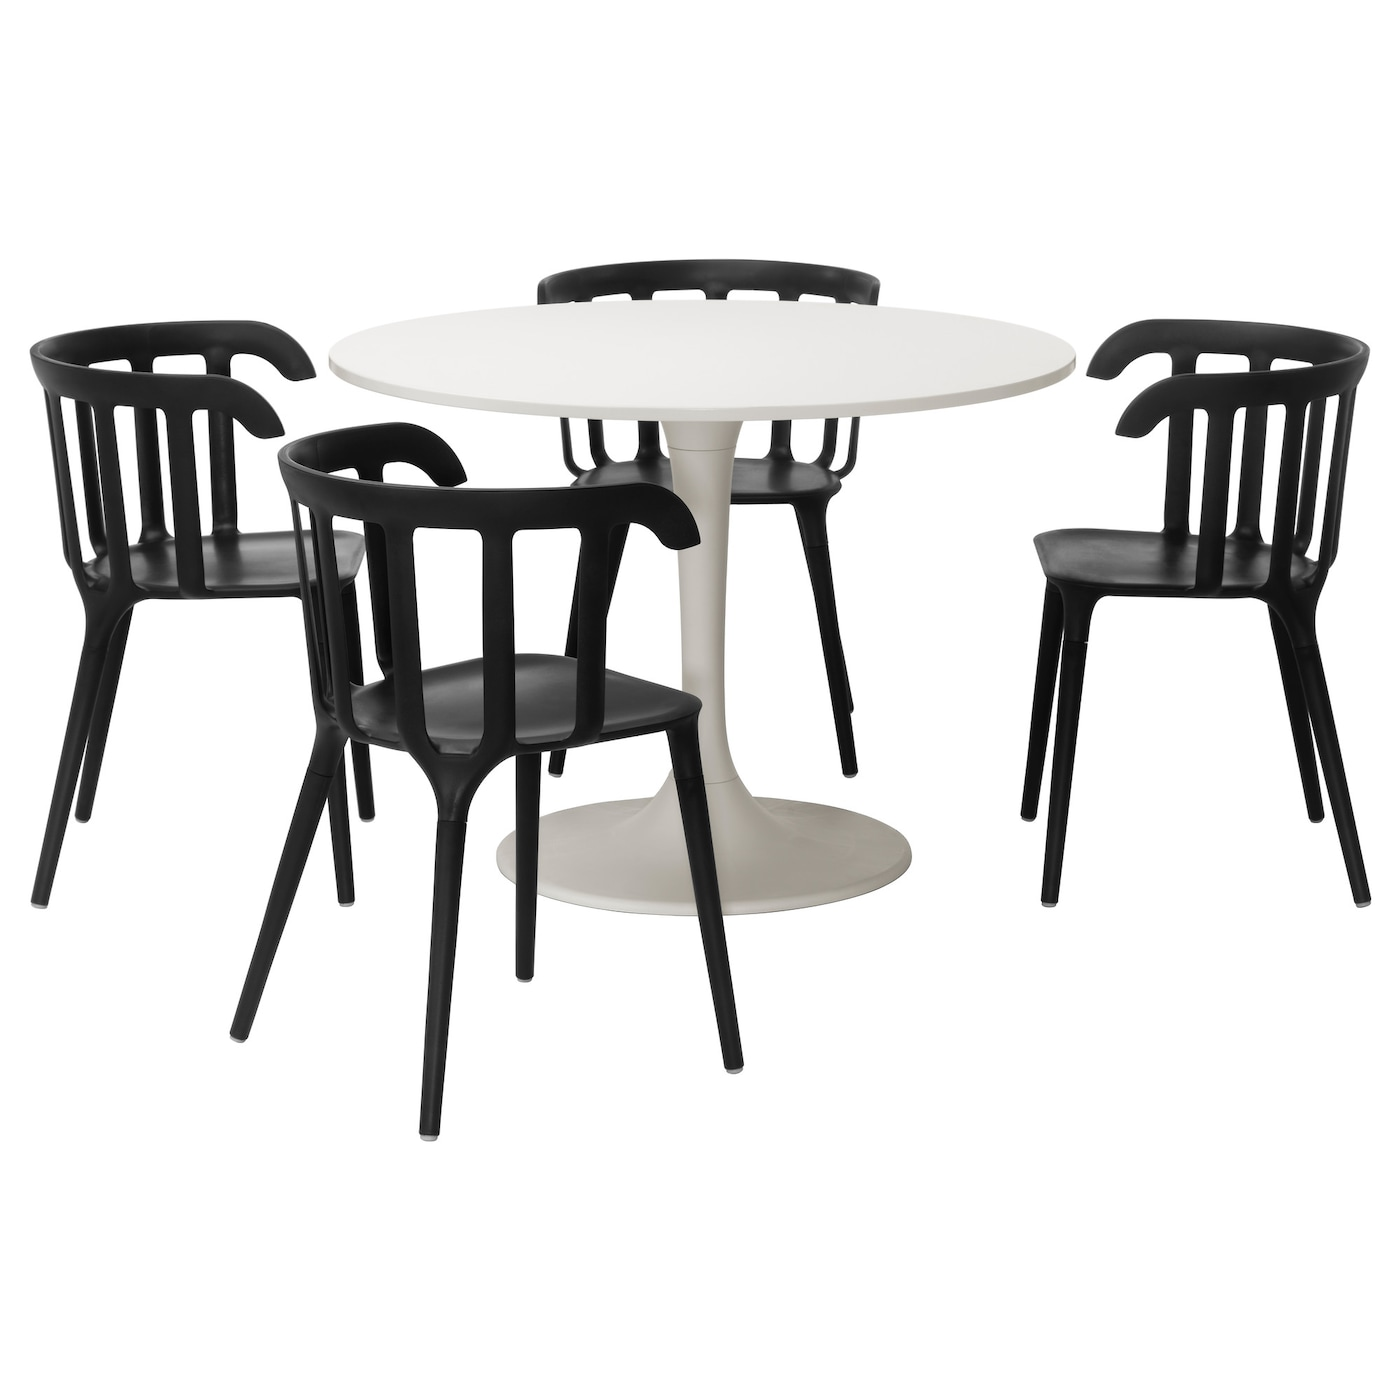 docksta ikea ps 2012 table and 4 chairs white black 105 cm ikea. Black Bedroom Furniture Sets. Home Design Ideas